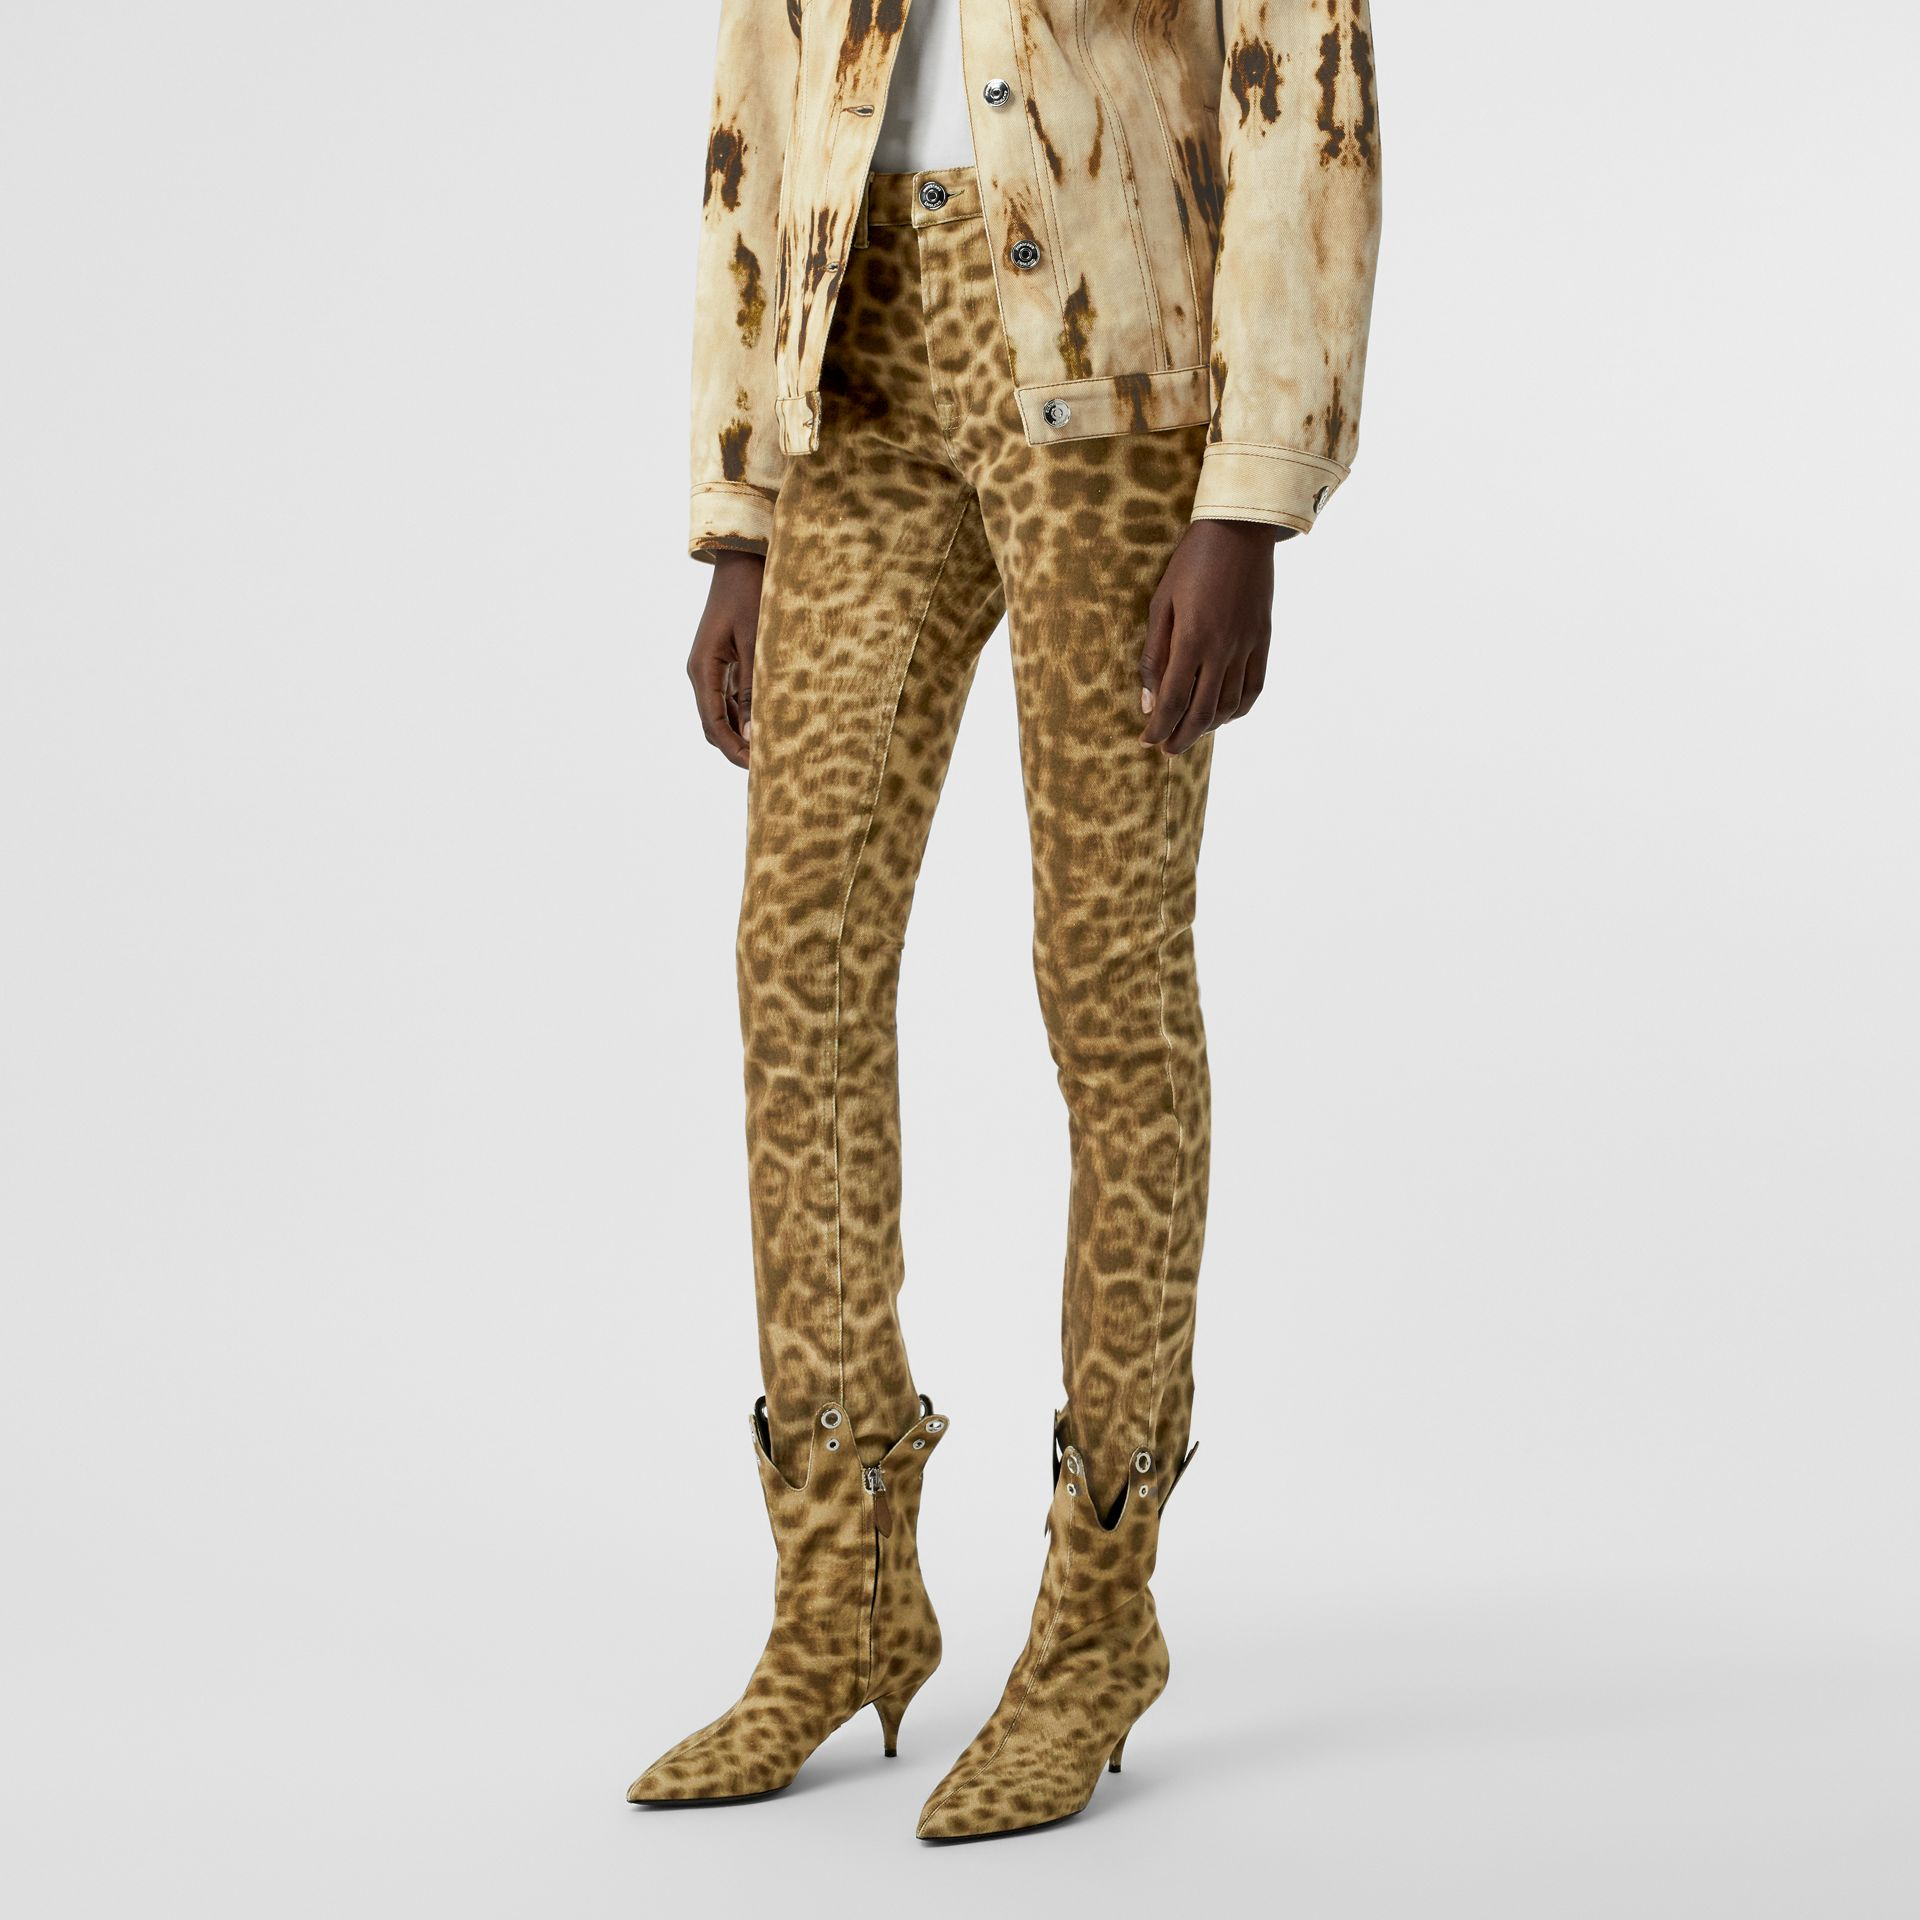 Straight Fit Leopard Print Japanese Denim Jeans in Beige - Women | Burberry Canada - gallery image 3